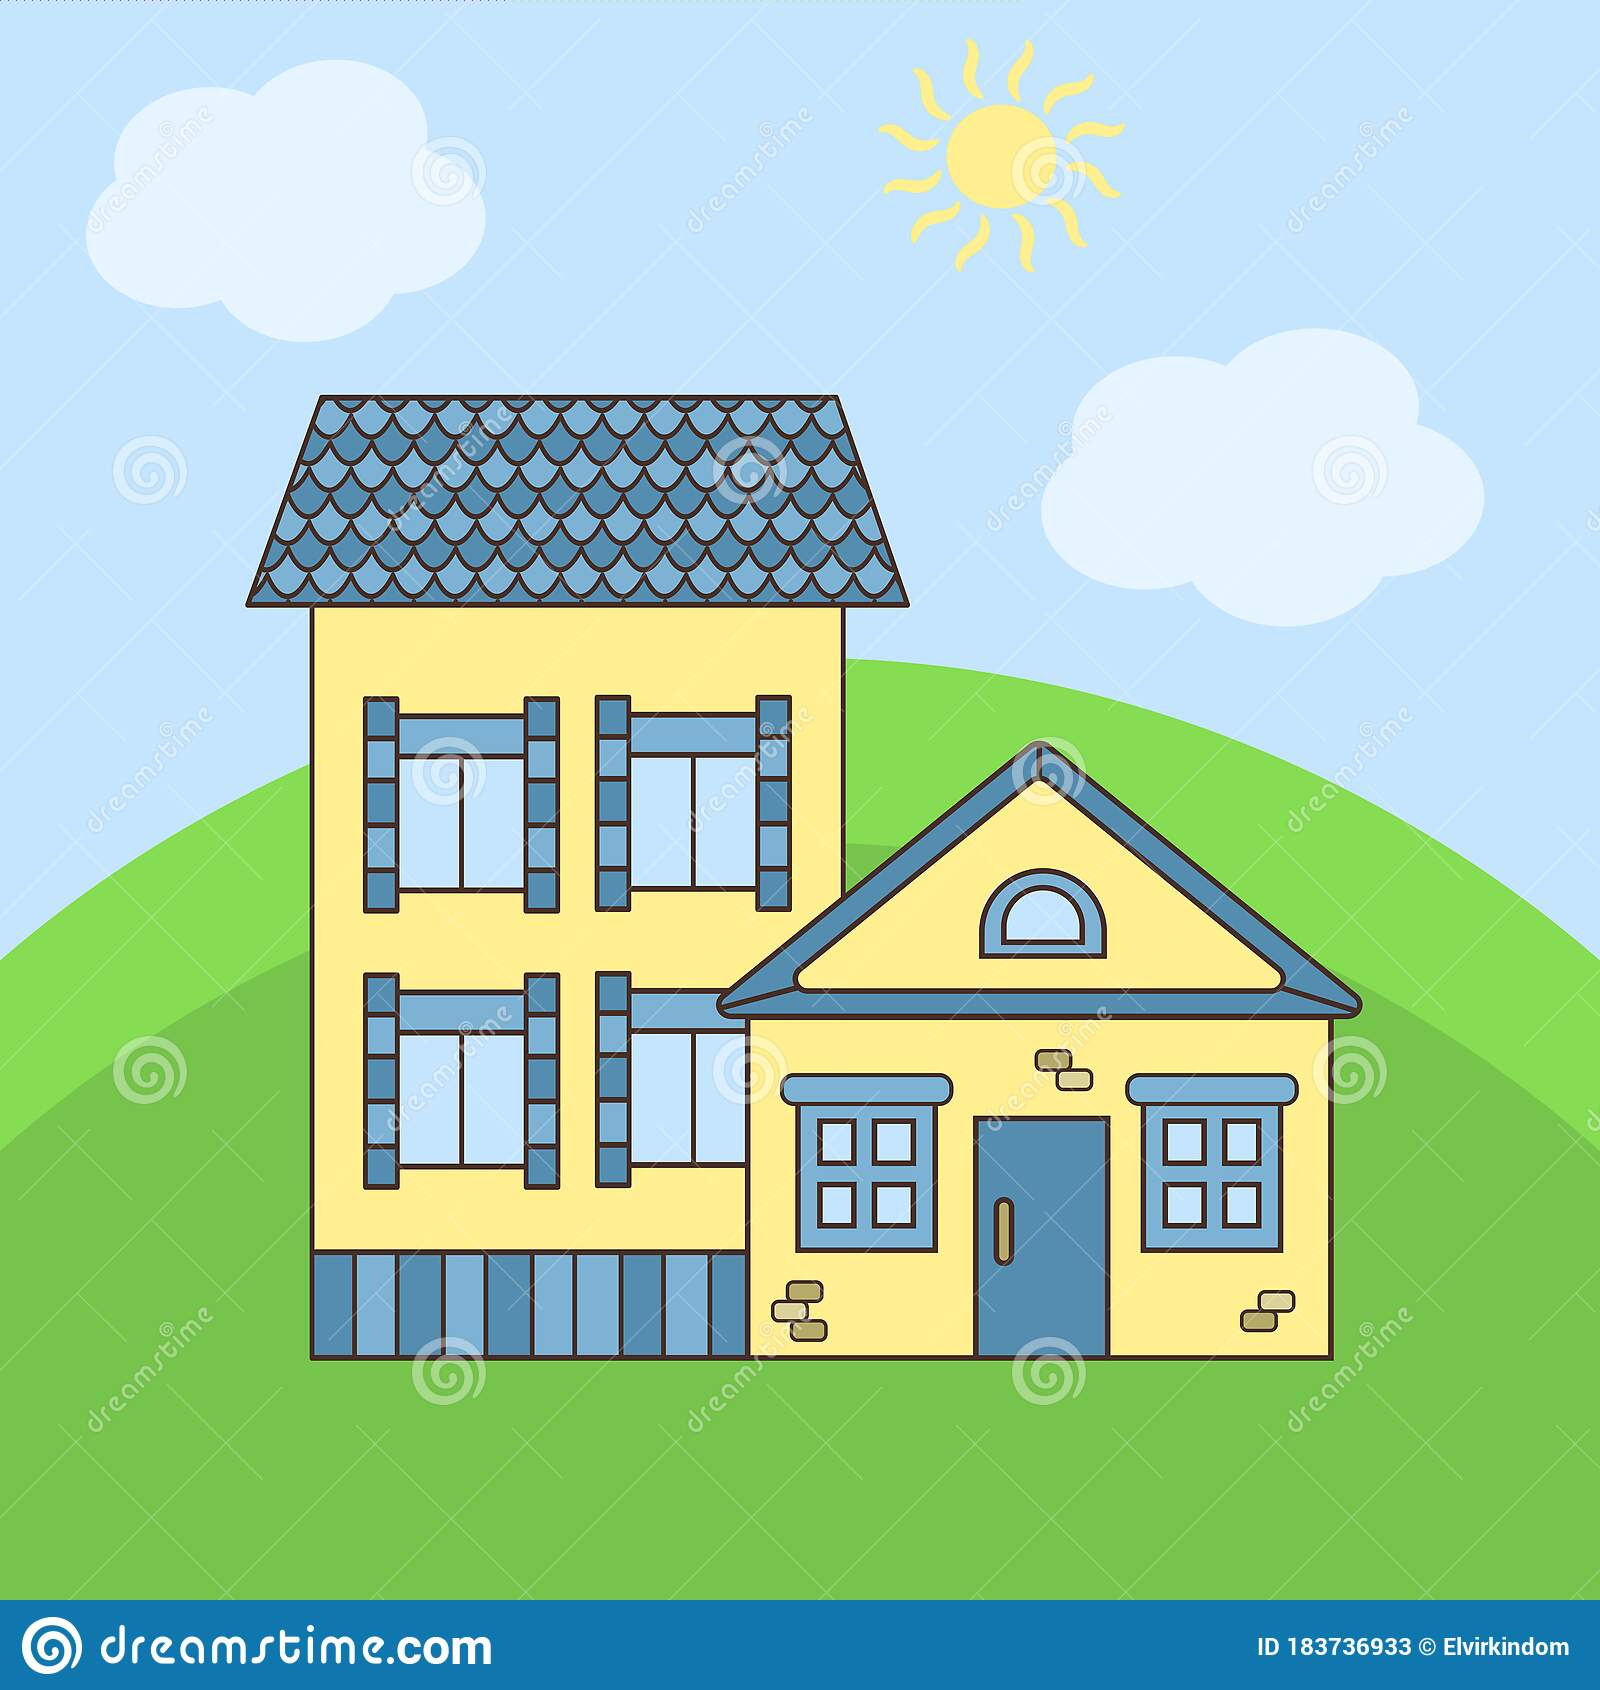 Cartoon Yellow House With A Blue Roof Stock Vector Illustration Of Design Grass 183736933